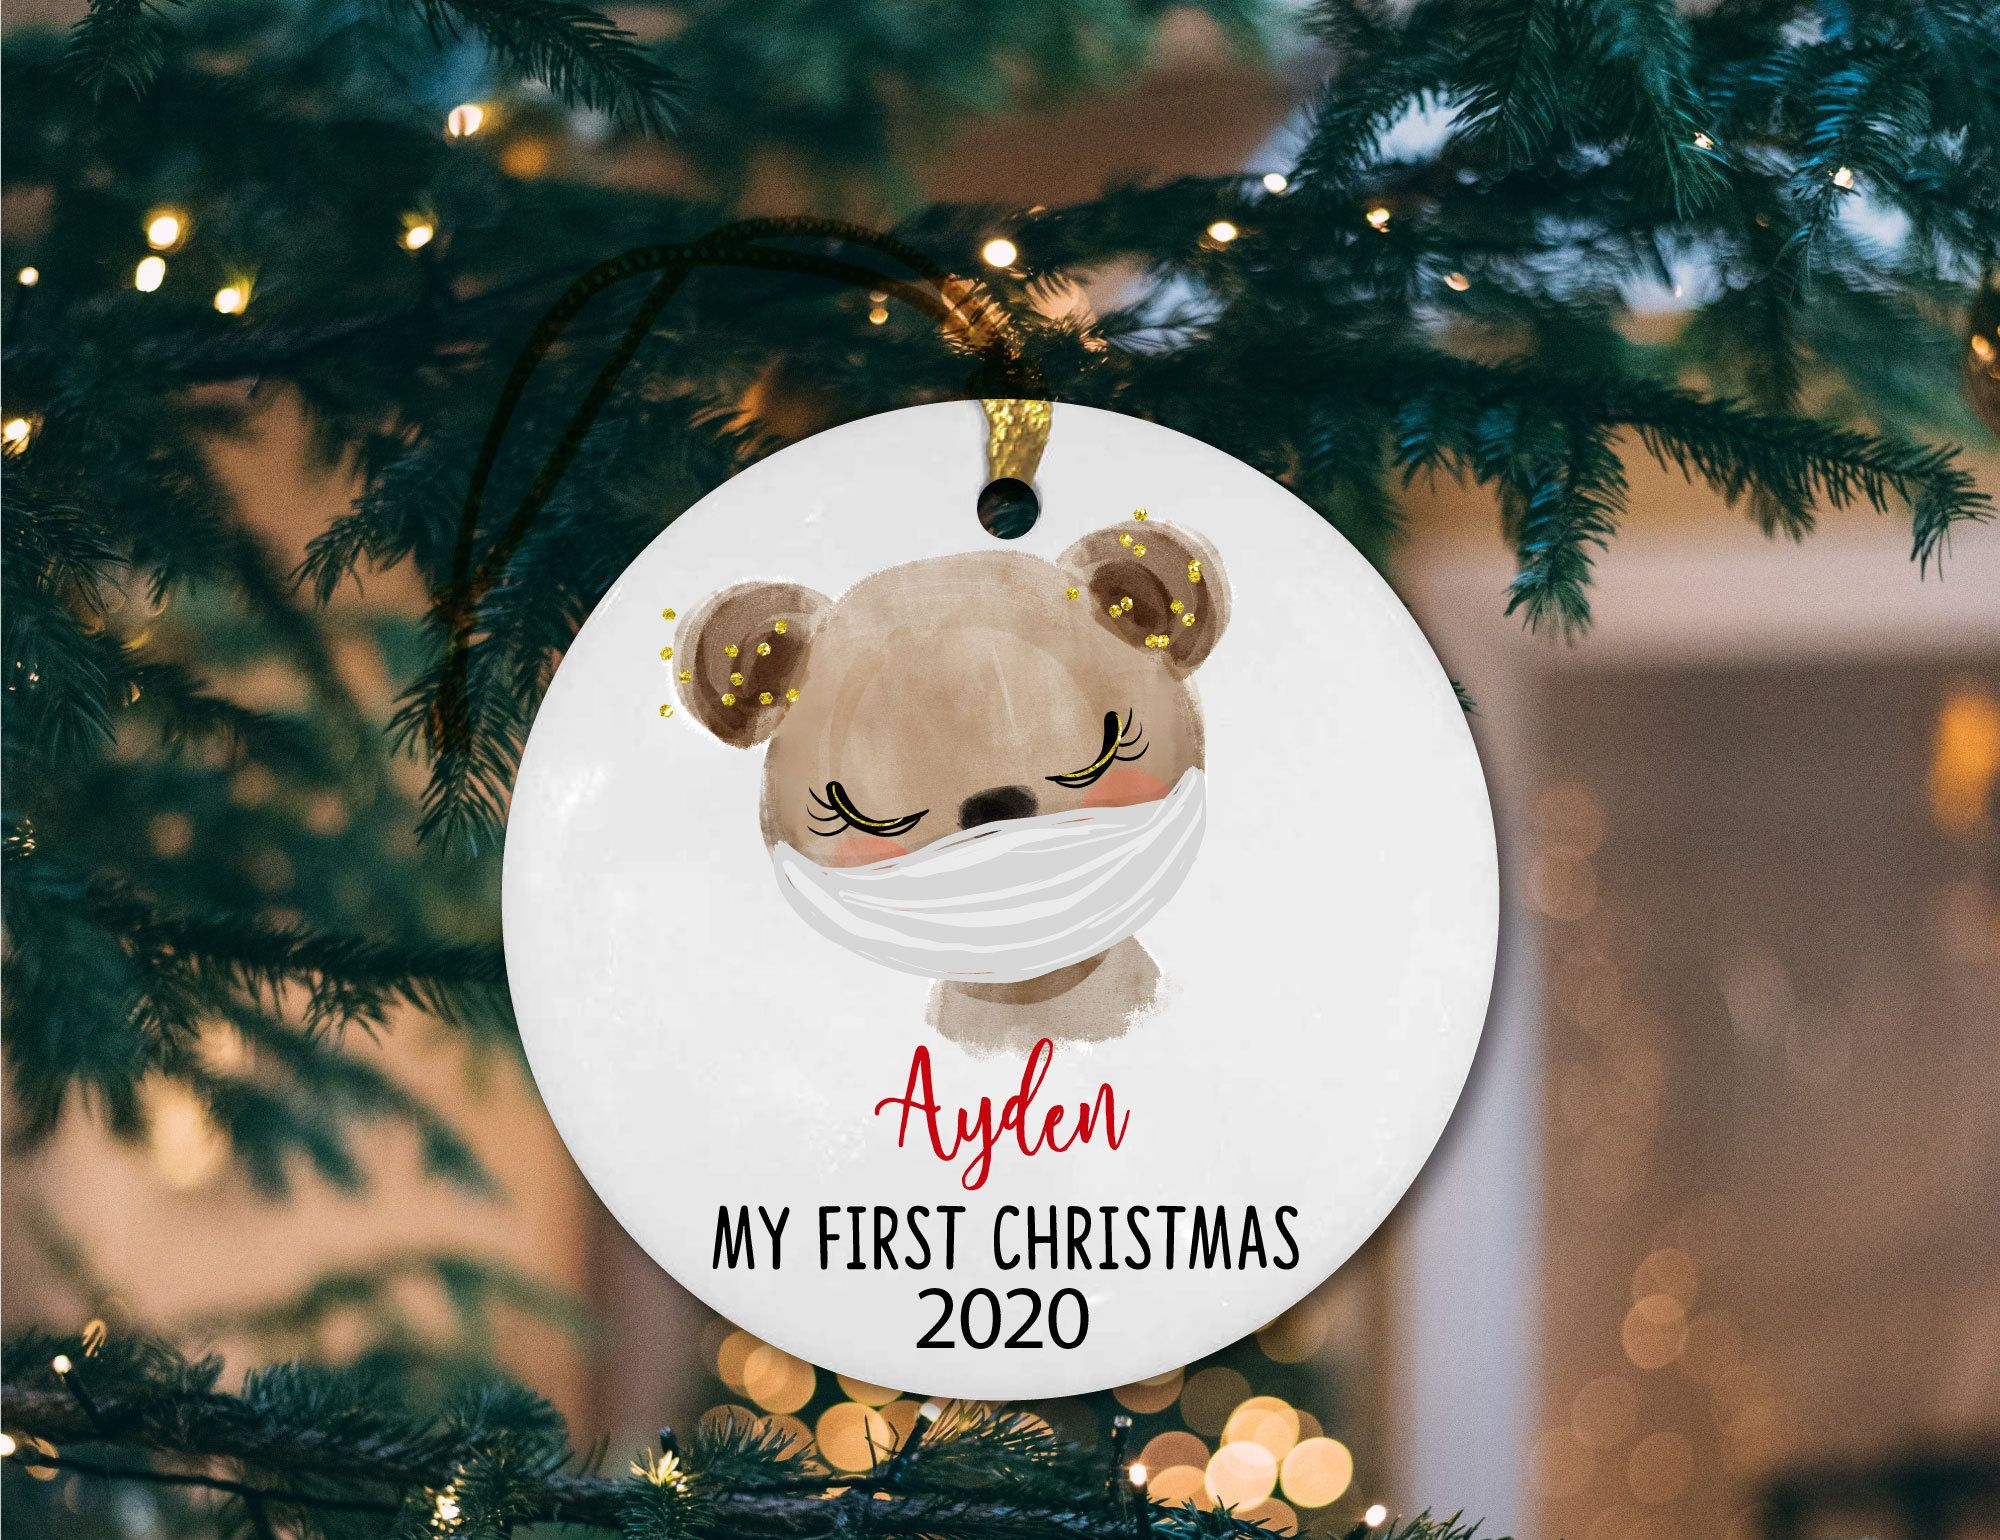 Personalized Christmas Ornaments With Masks Babys First Etsy In 2020 First Christmas Ornament Personalized Christmas Ornaments Christmas Ornaments